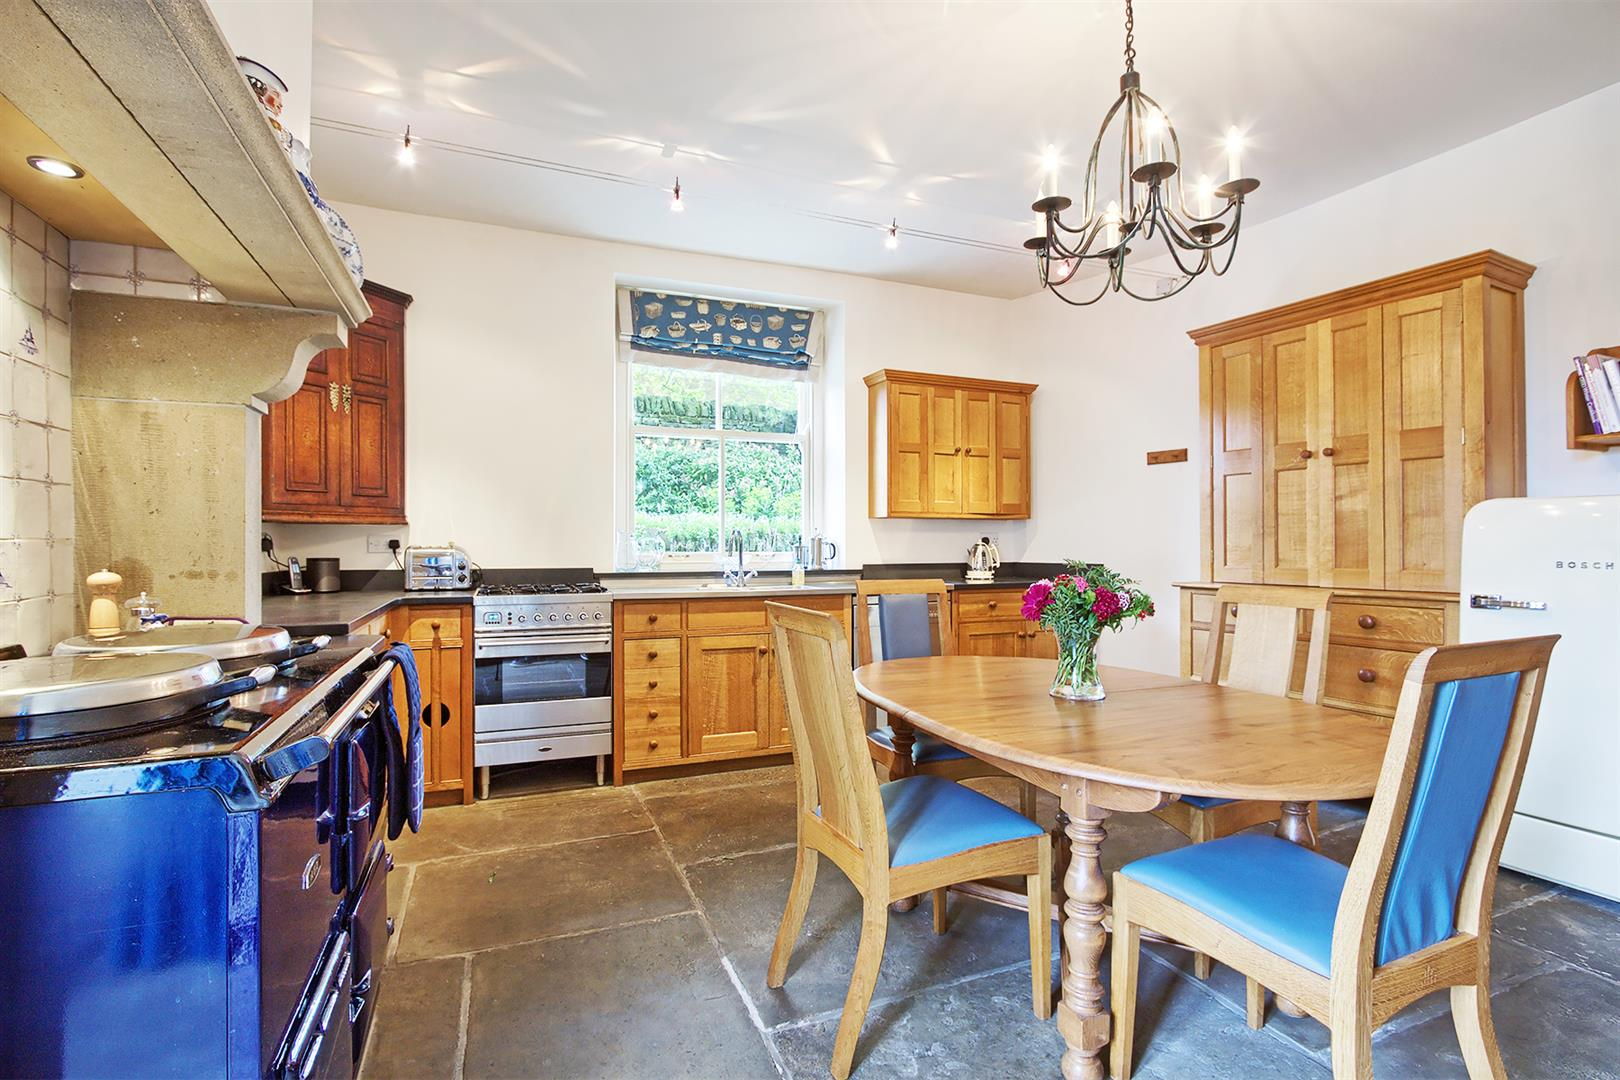 5 bedroom detached house For Sale in Bolton - kitchen 2.png.